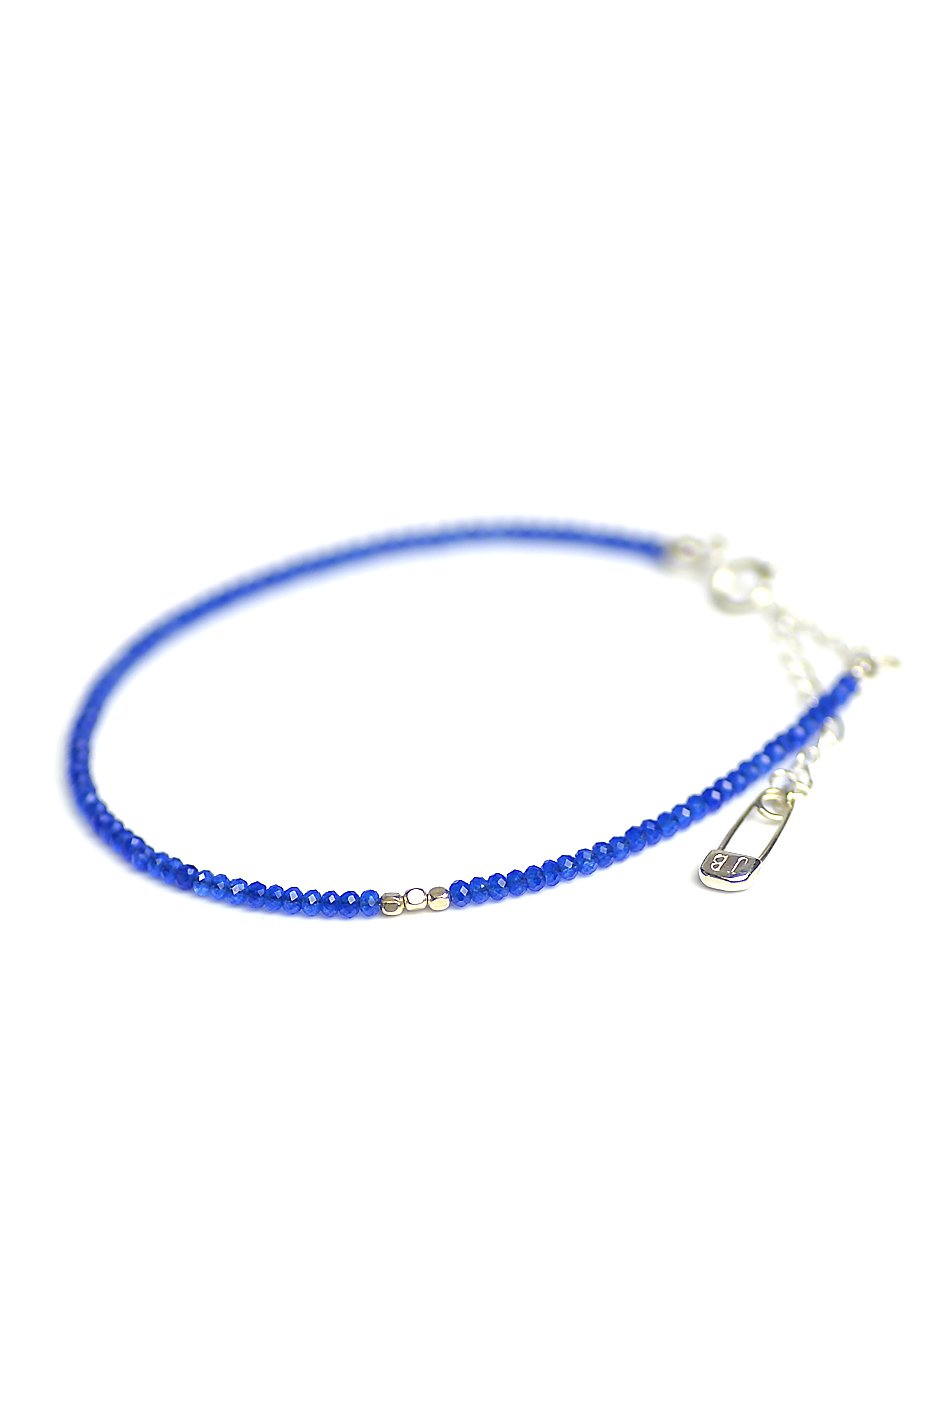 Johnny Business(ジョニービジネス) Basic Blue Bracelet